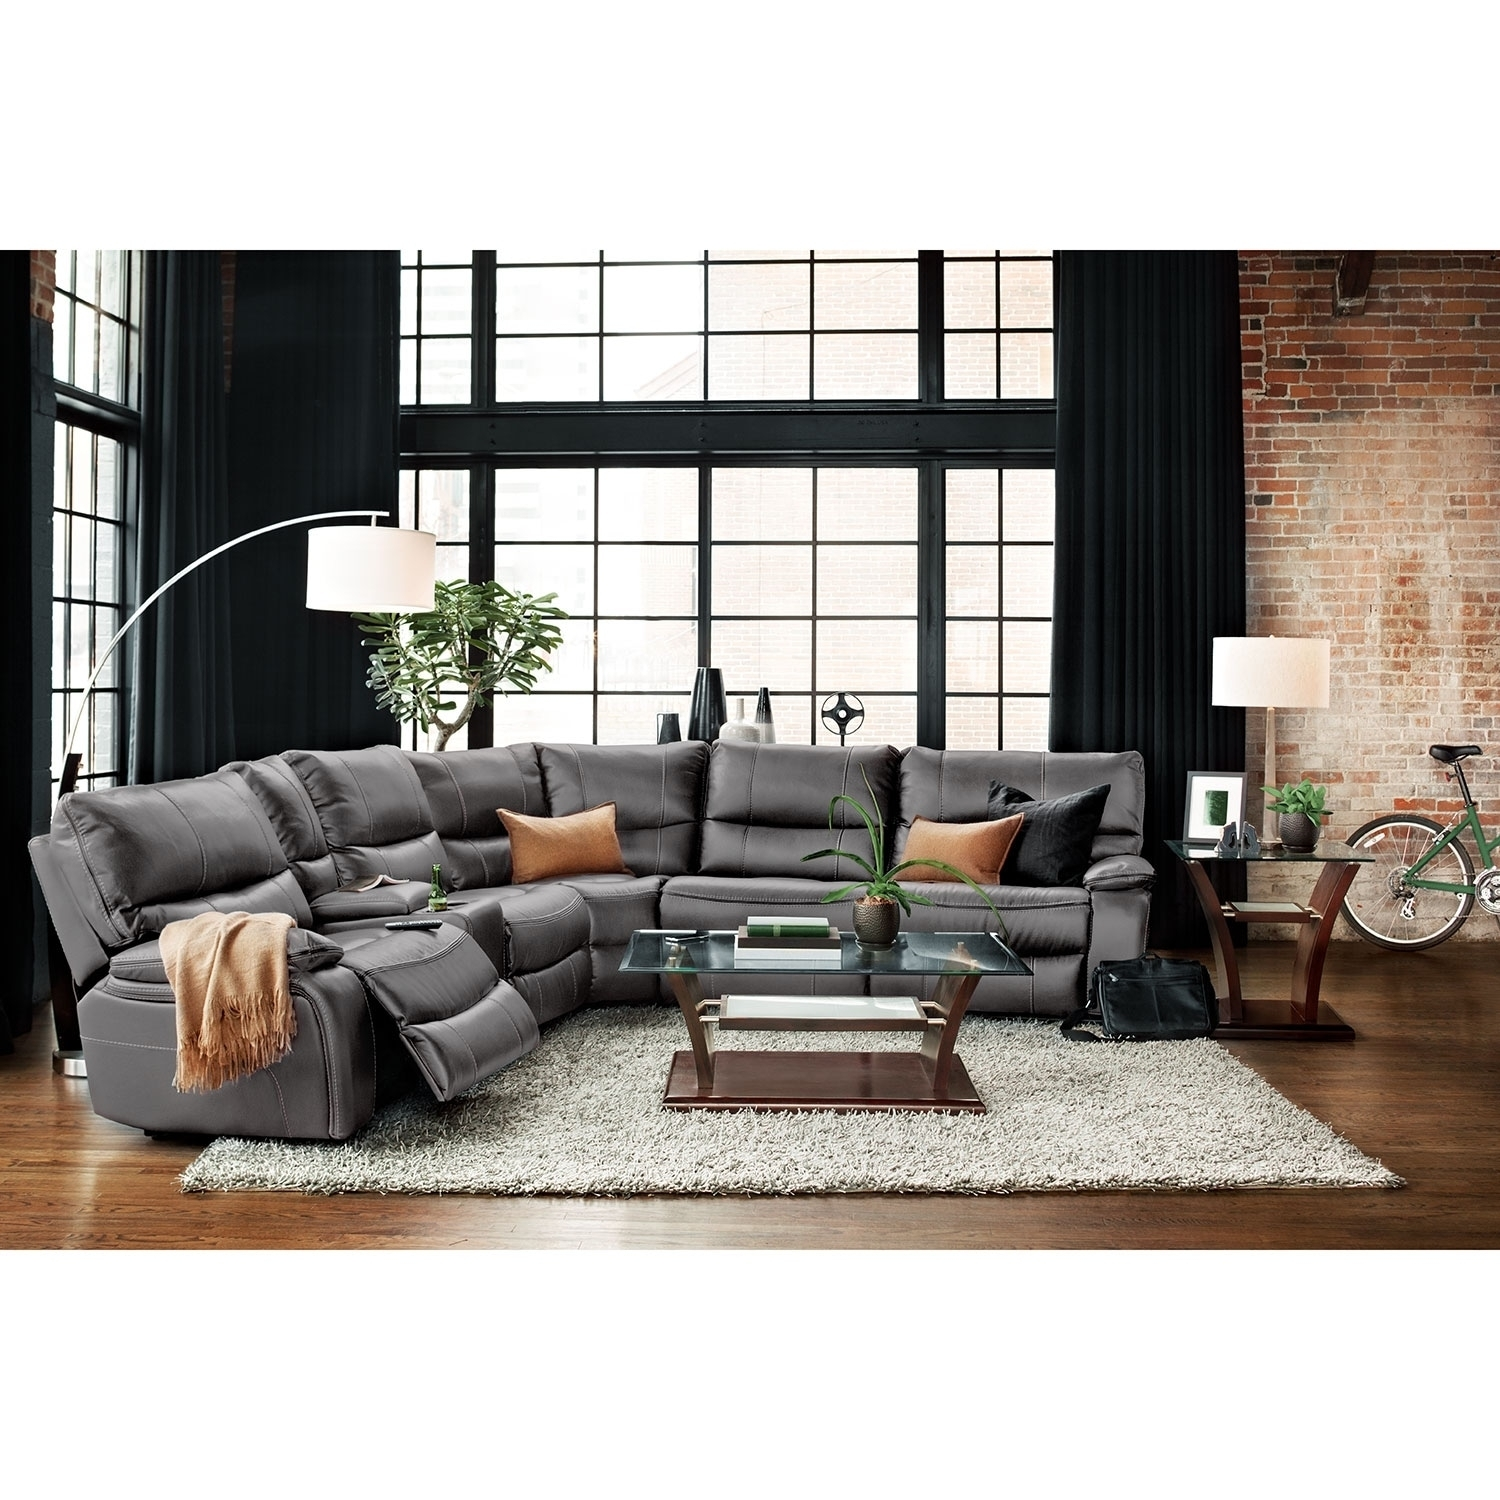 Orlando 6 Piece Power Reclining Sectional With 1 Stationary Chair Throughout Orlando Sectional Sofas (View 4 of 10)